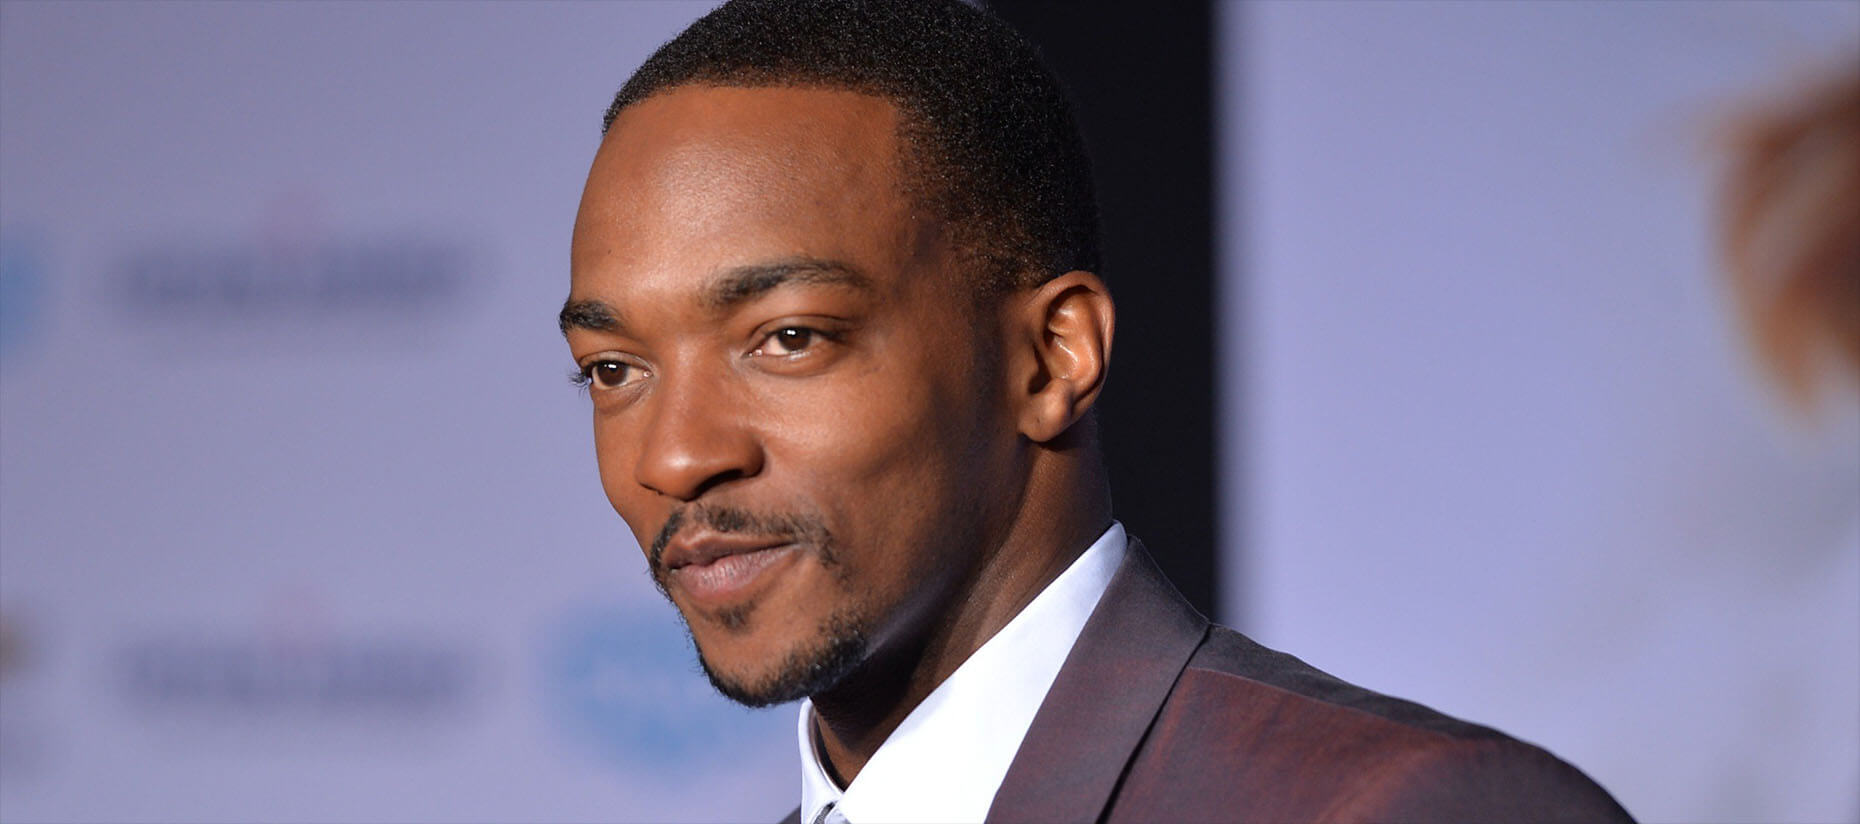 Anthony Mackie, il nuovo attore protagonista di Altered Carbon